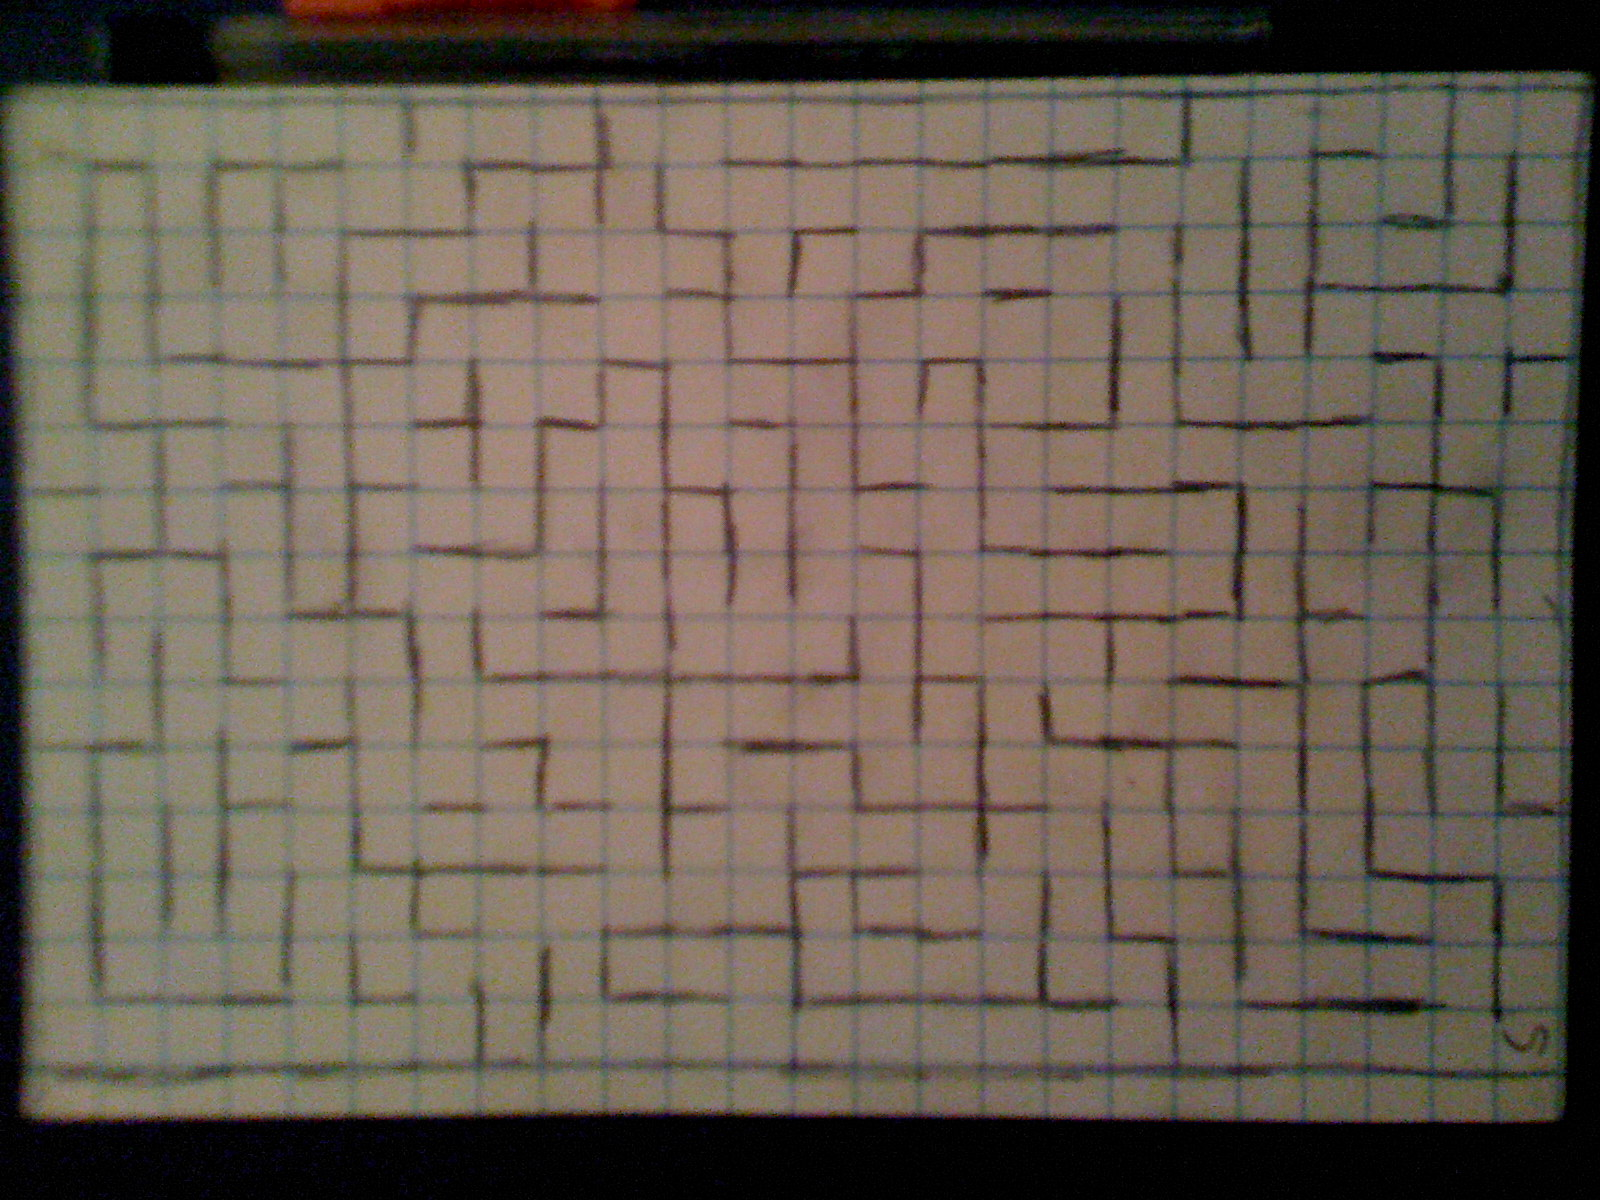 Mazes From Middle School